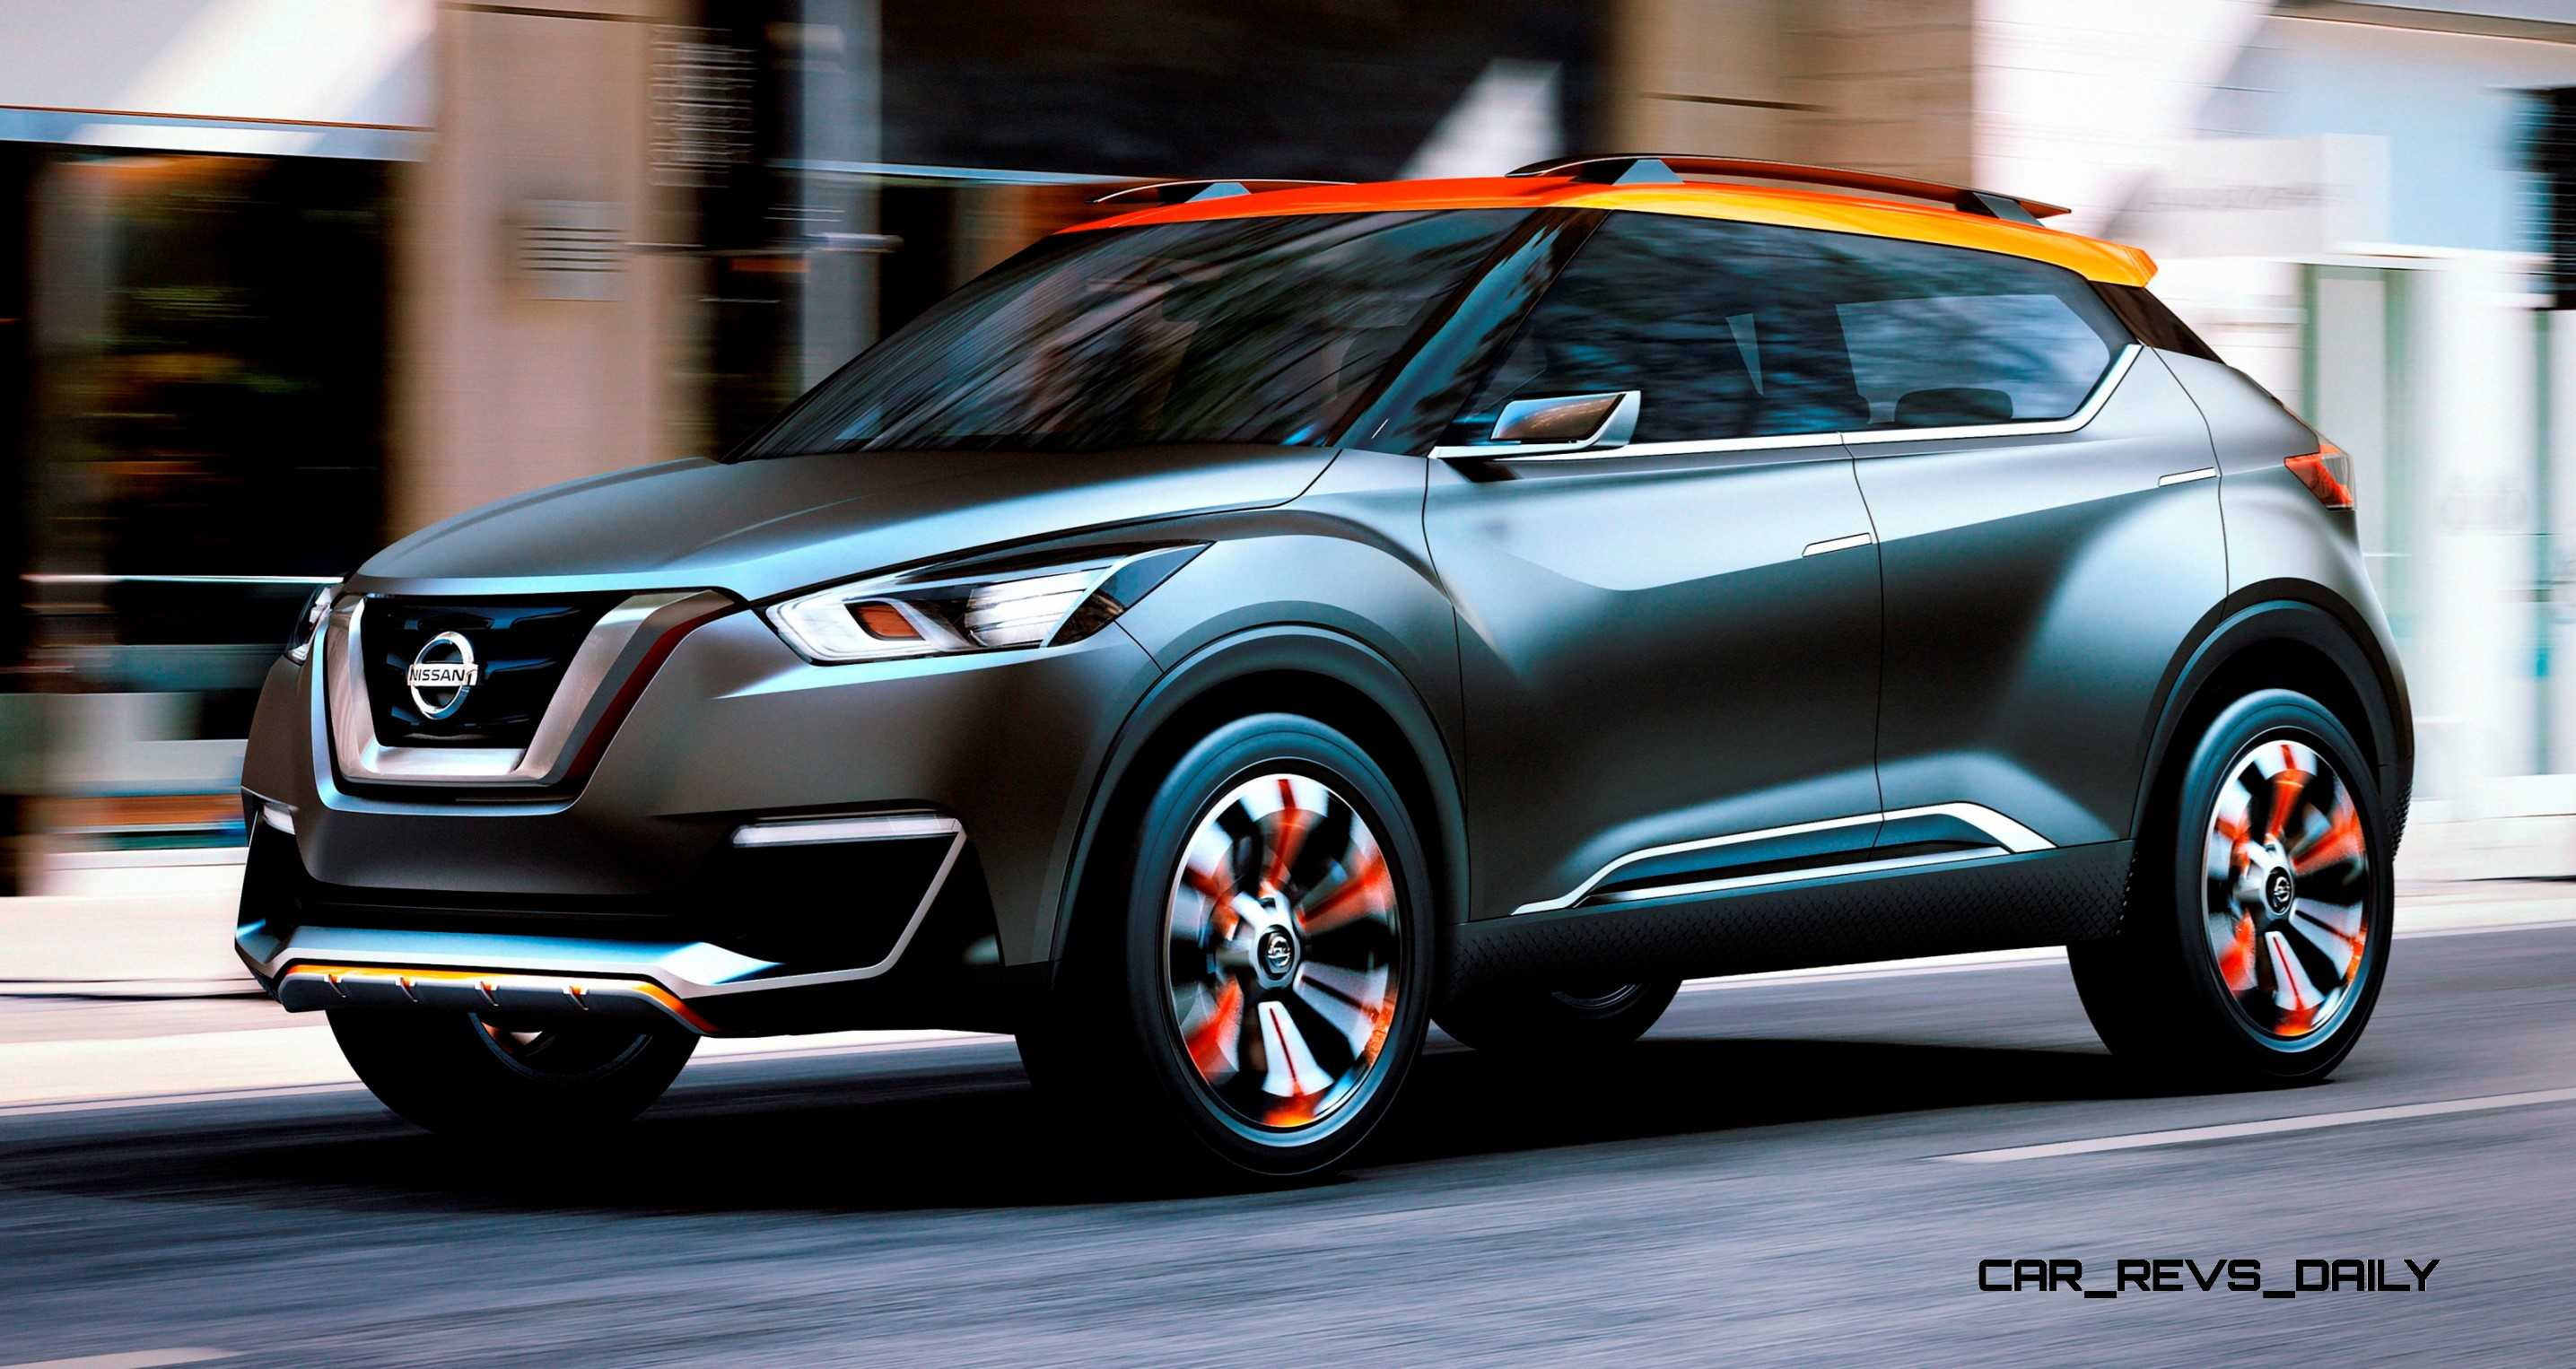 New Lexus Suv >> 2014 Nissan Kicks Concept Is New Sao Paolo Off-Road Crossover